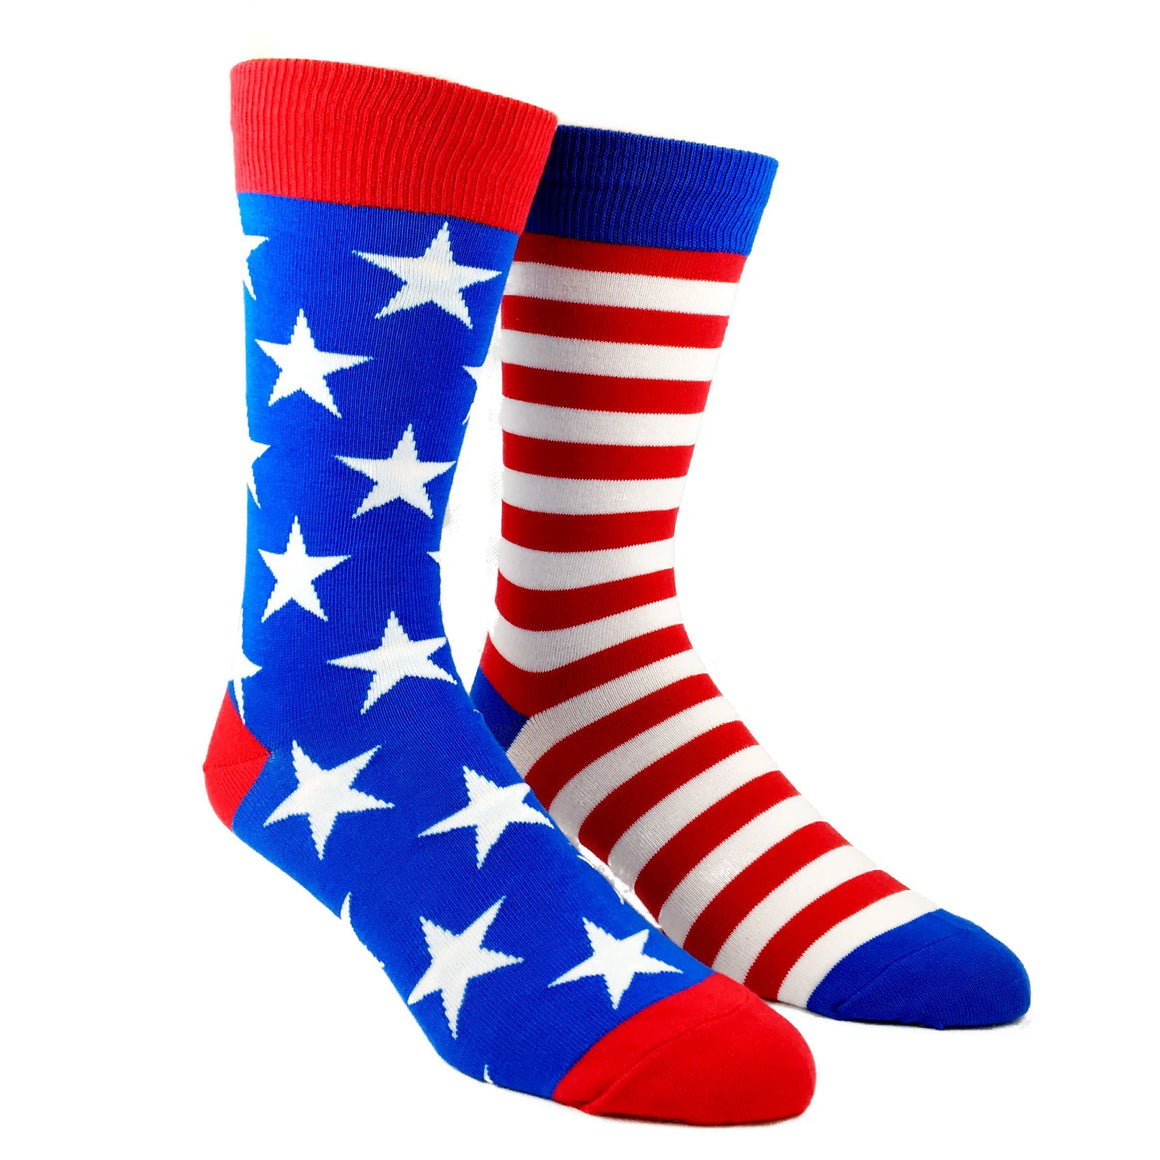 Stars and Stripes Americana Flag Socks by SockSmith - The Sock Spot